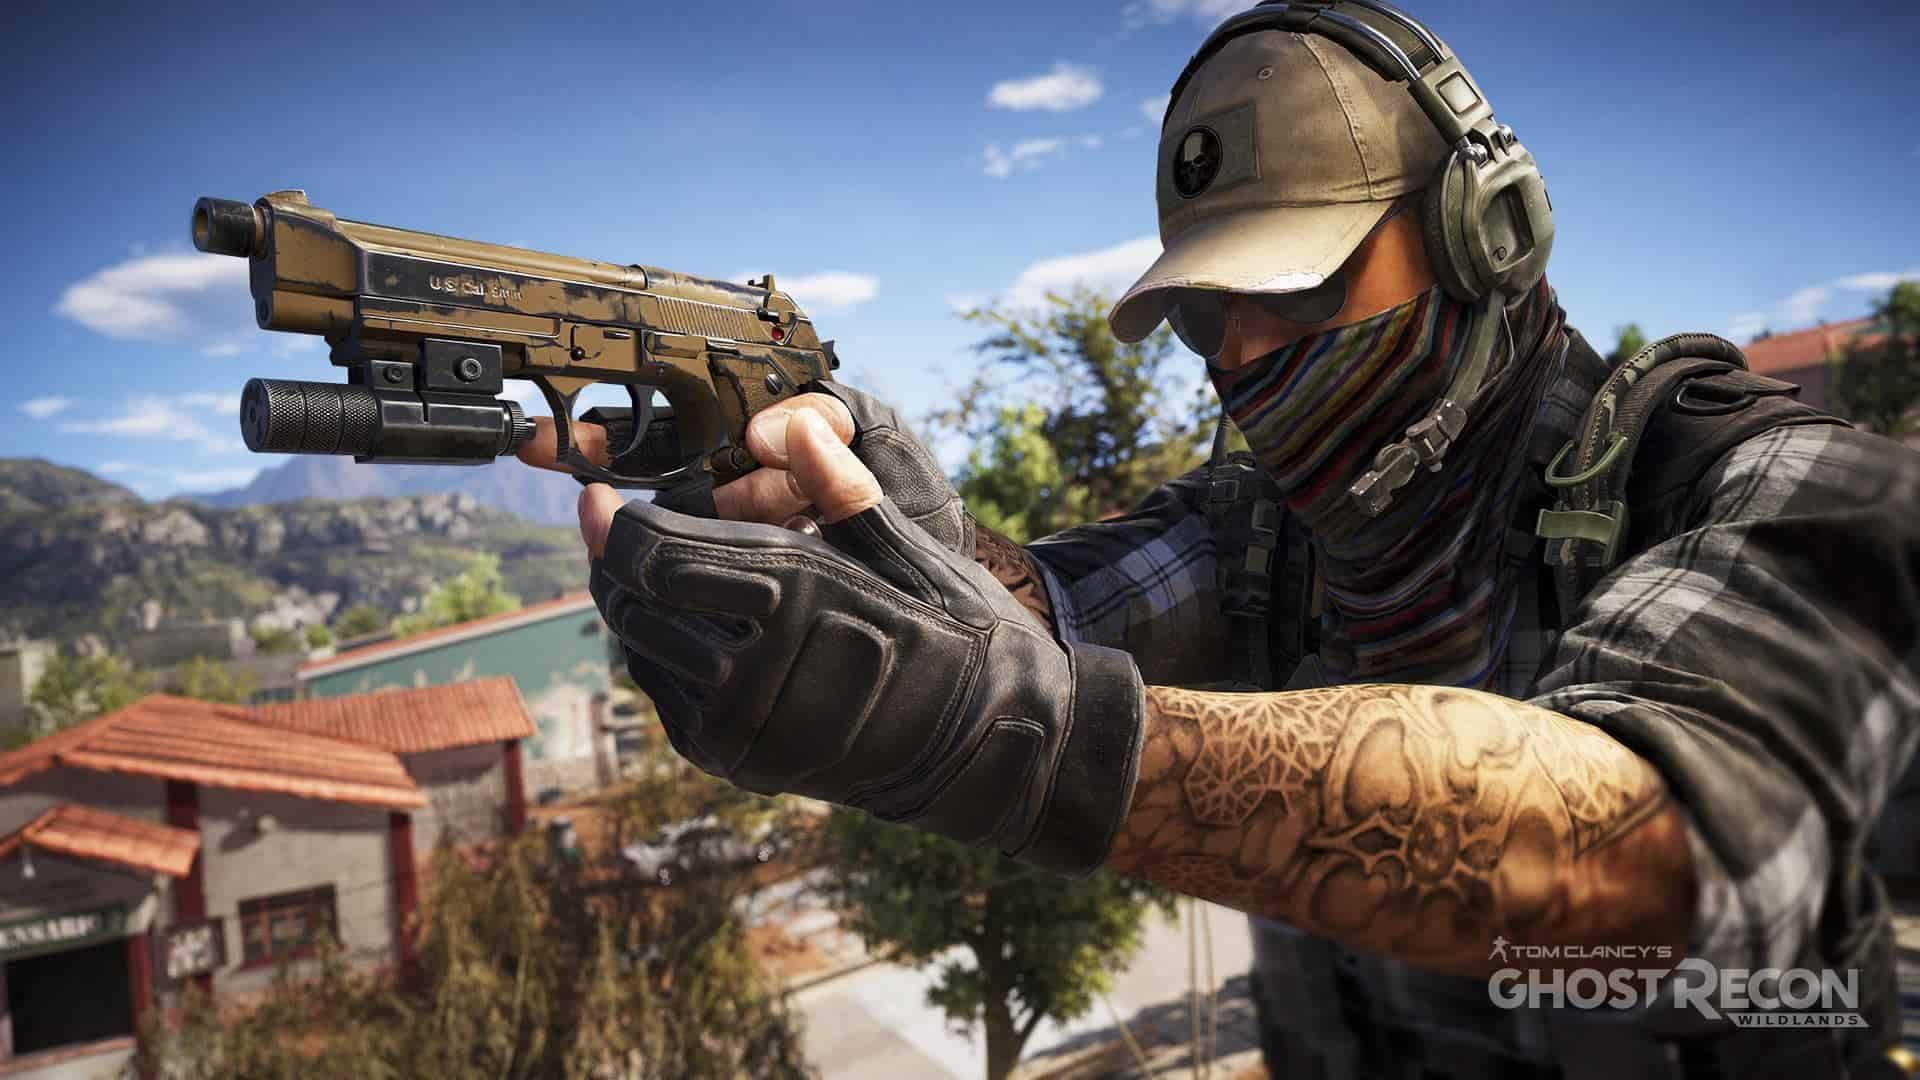 Ghost Recon Wildlands Anniversary: Video Celebration & Free In-Game Items